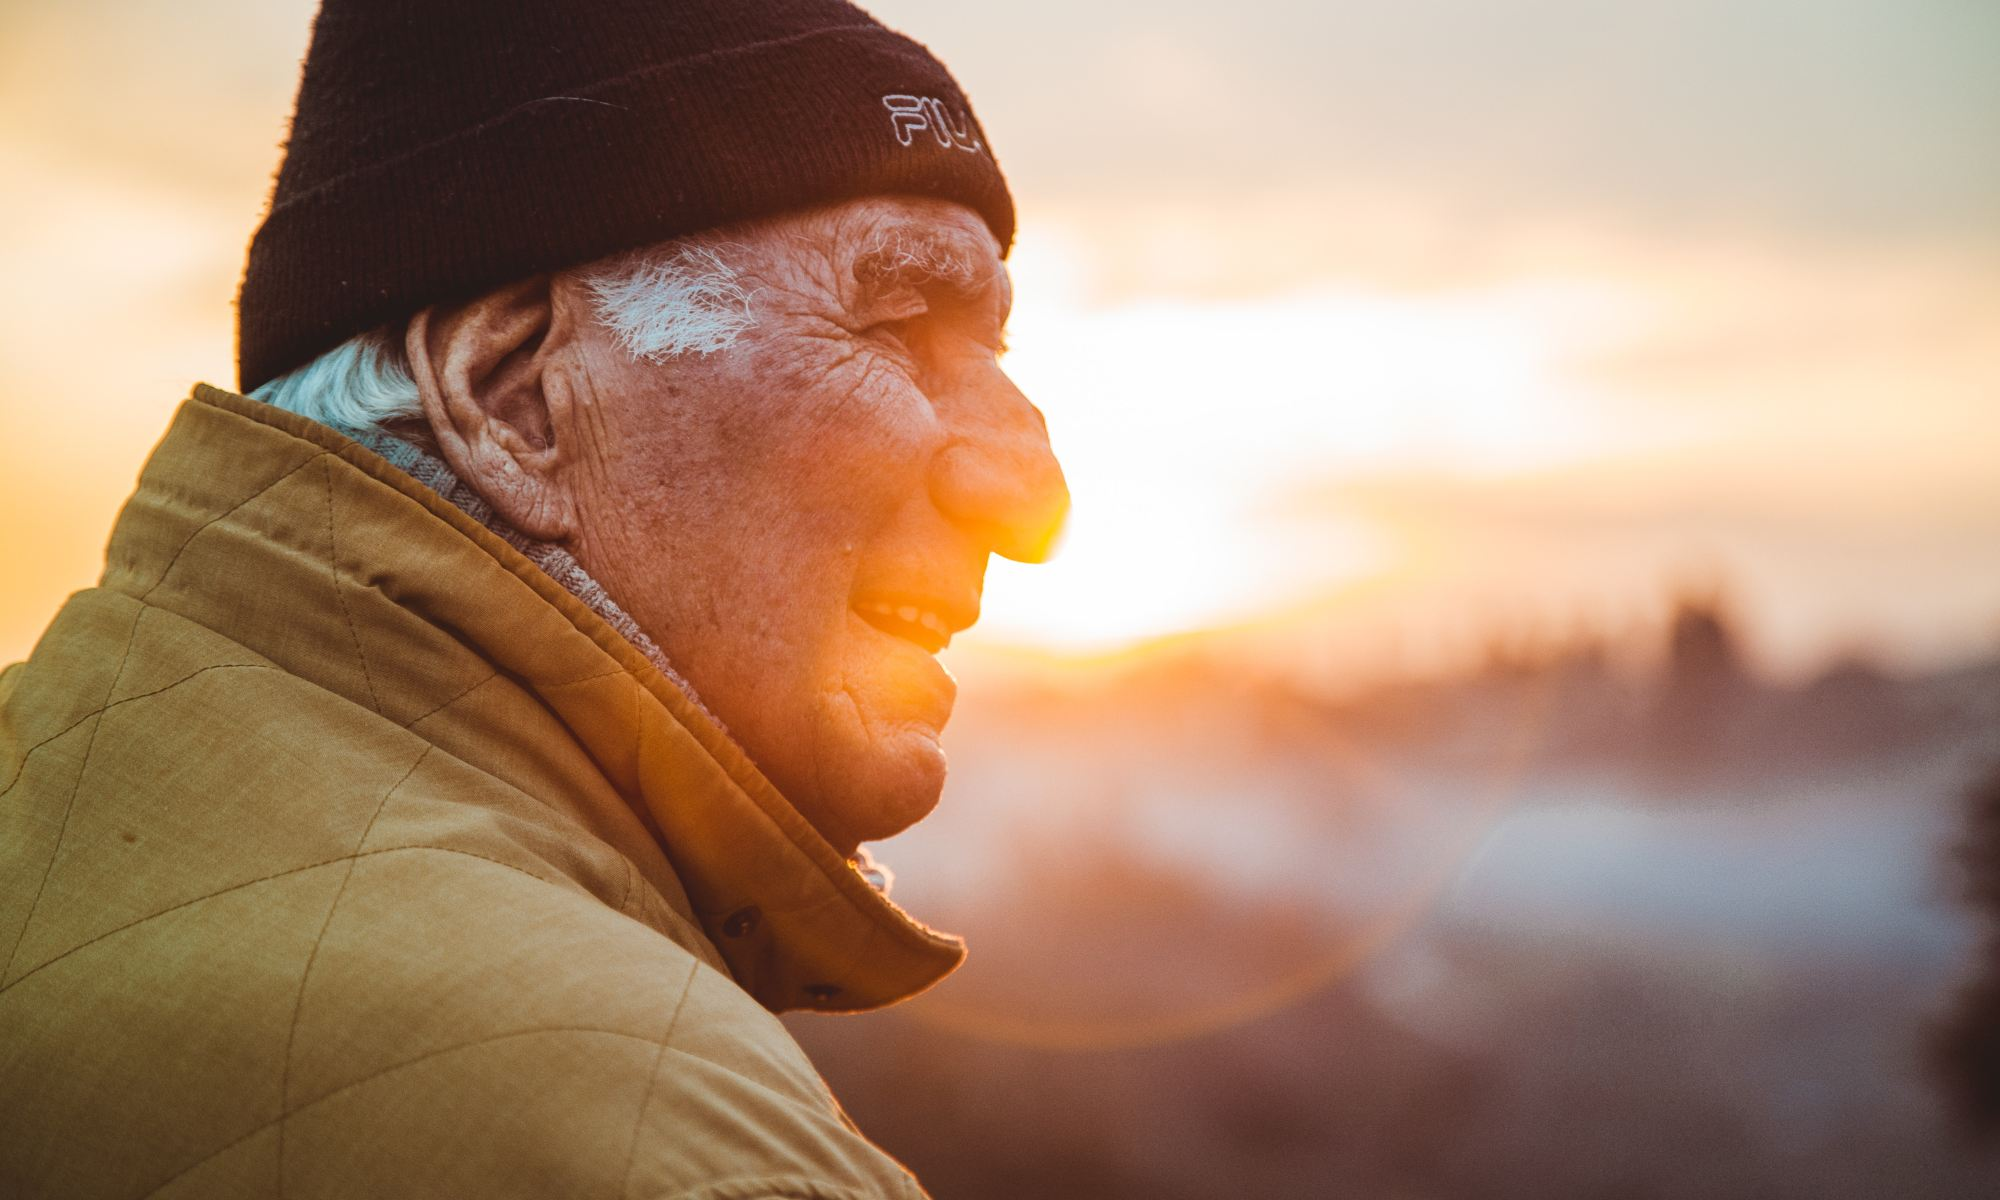 Elderly man with dementia staring in nature